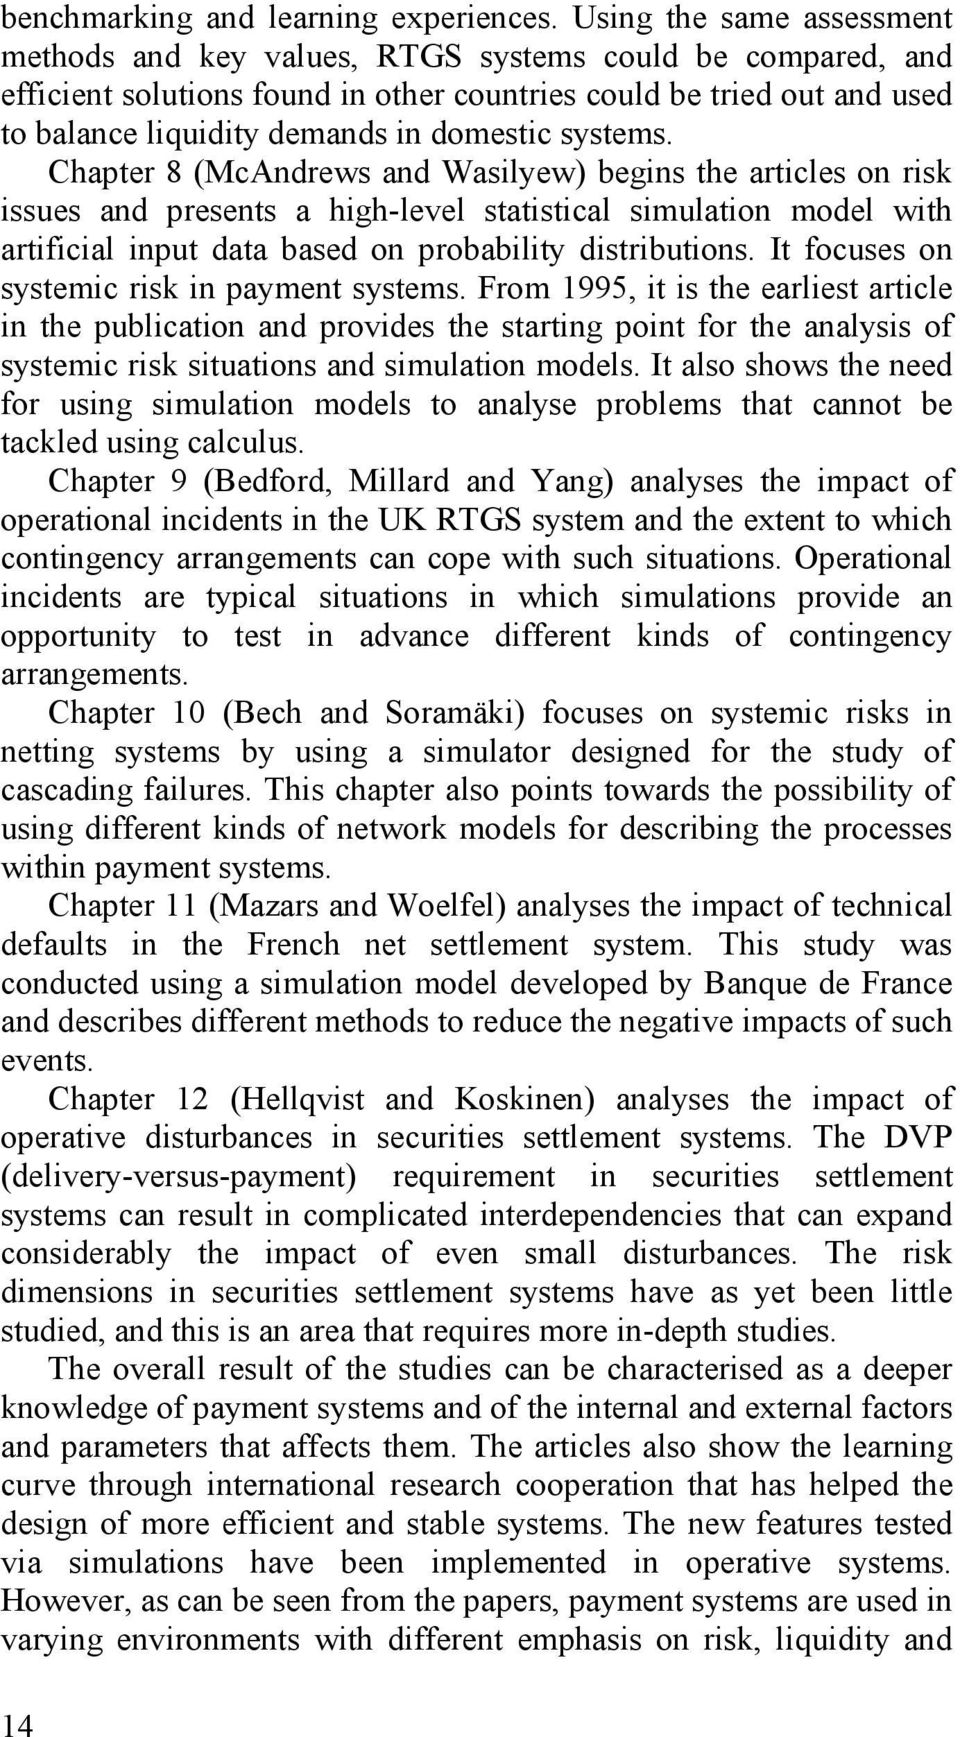 systems. Chapter 8 (McAndrews and Wasilyew) begins the articles on risk issues and presents a high-level statistical simulation model with artificial input data based on probability distributions.